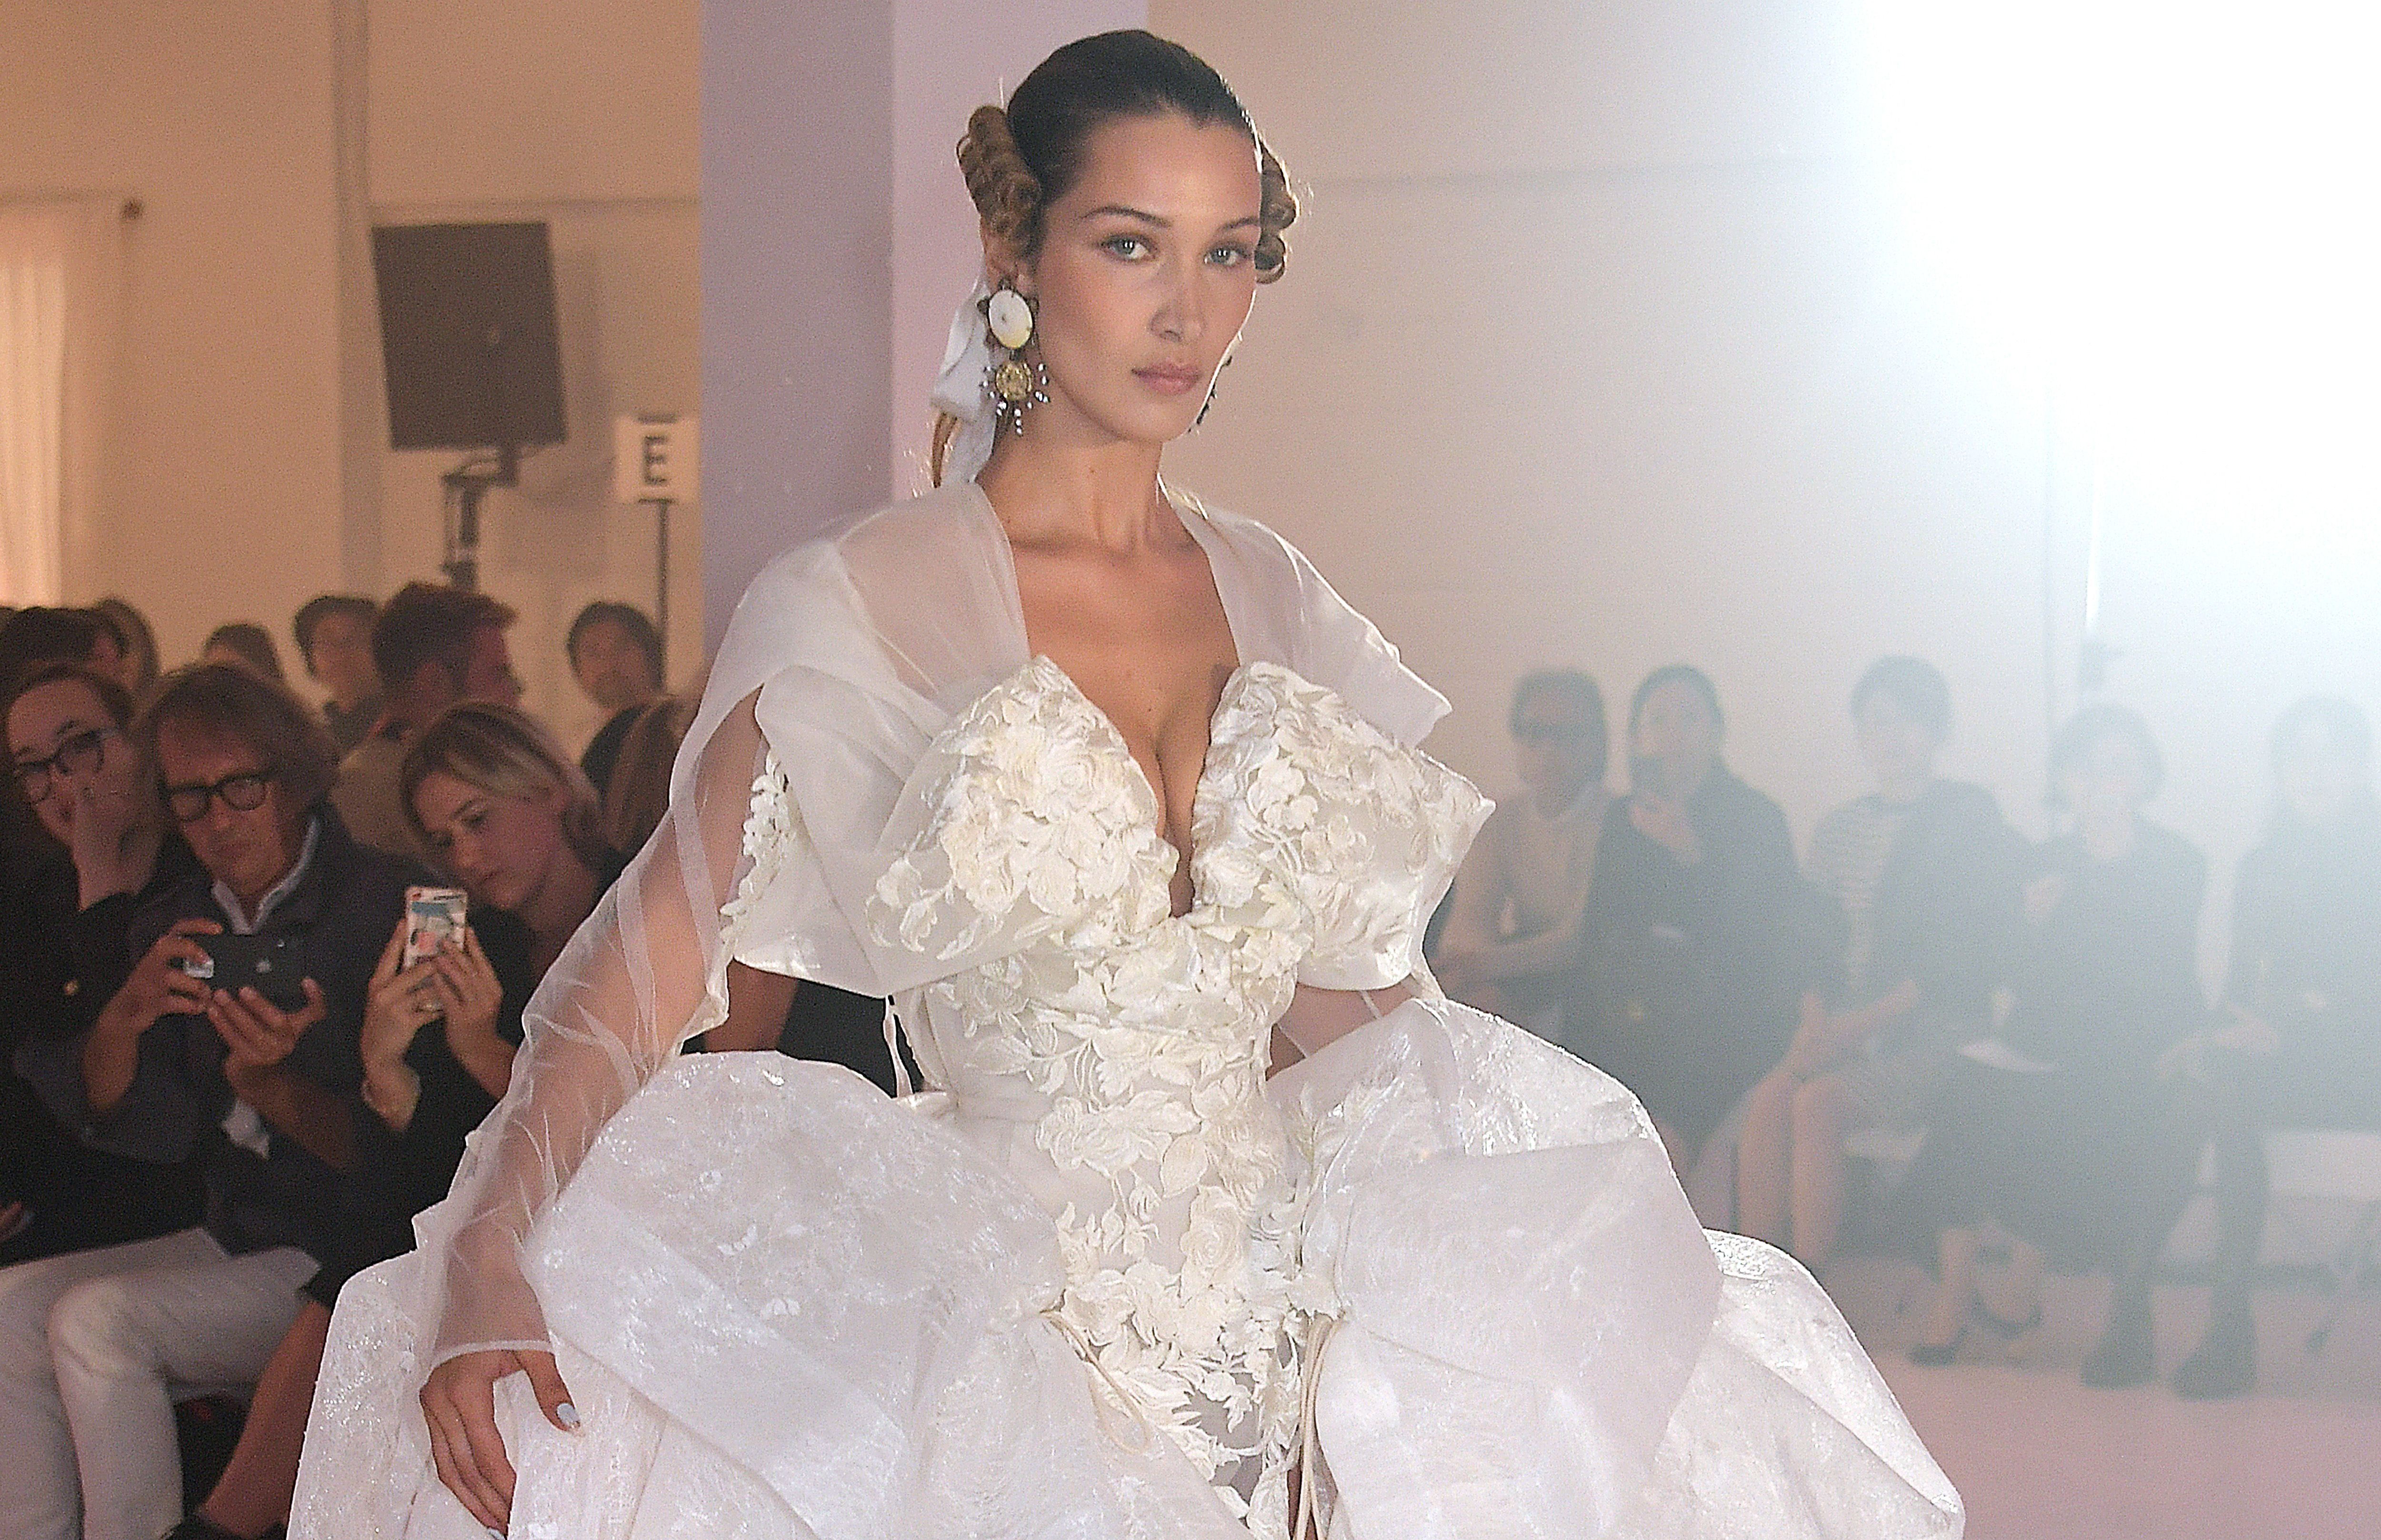 Bella Hadid closes the Vivienne Westwood show in an 18th century wedding dress